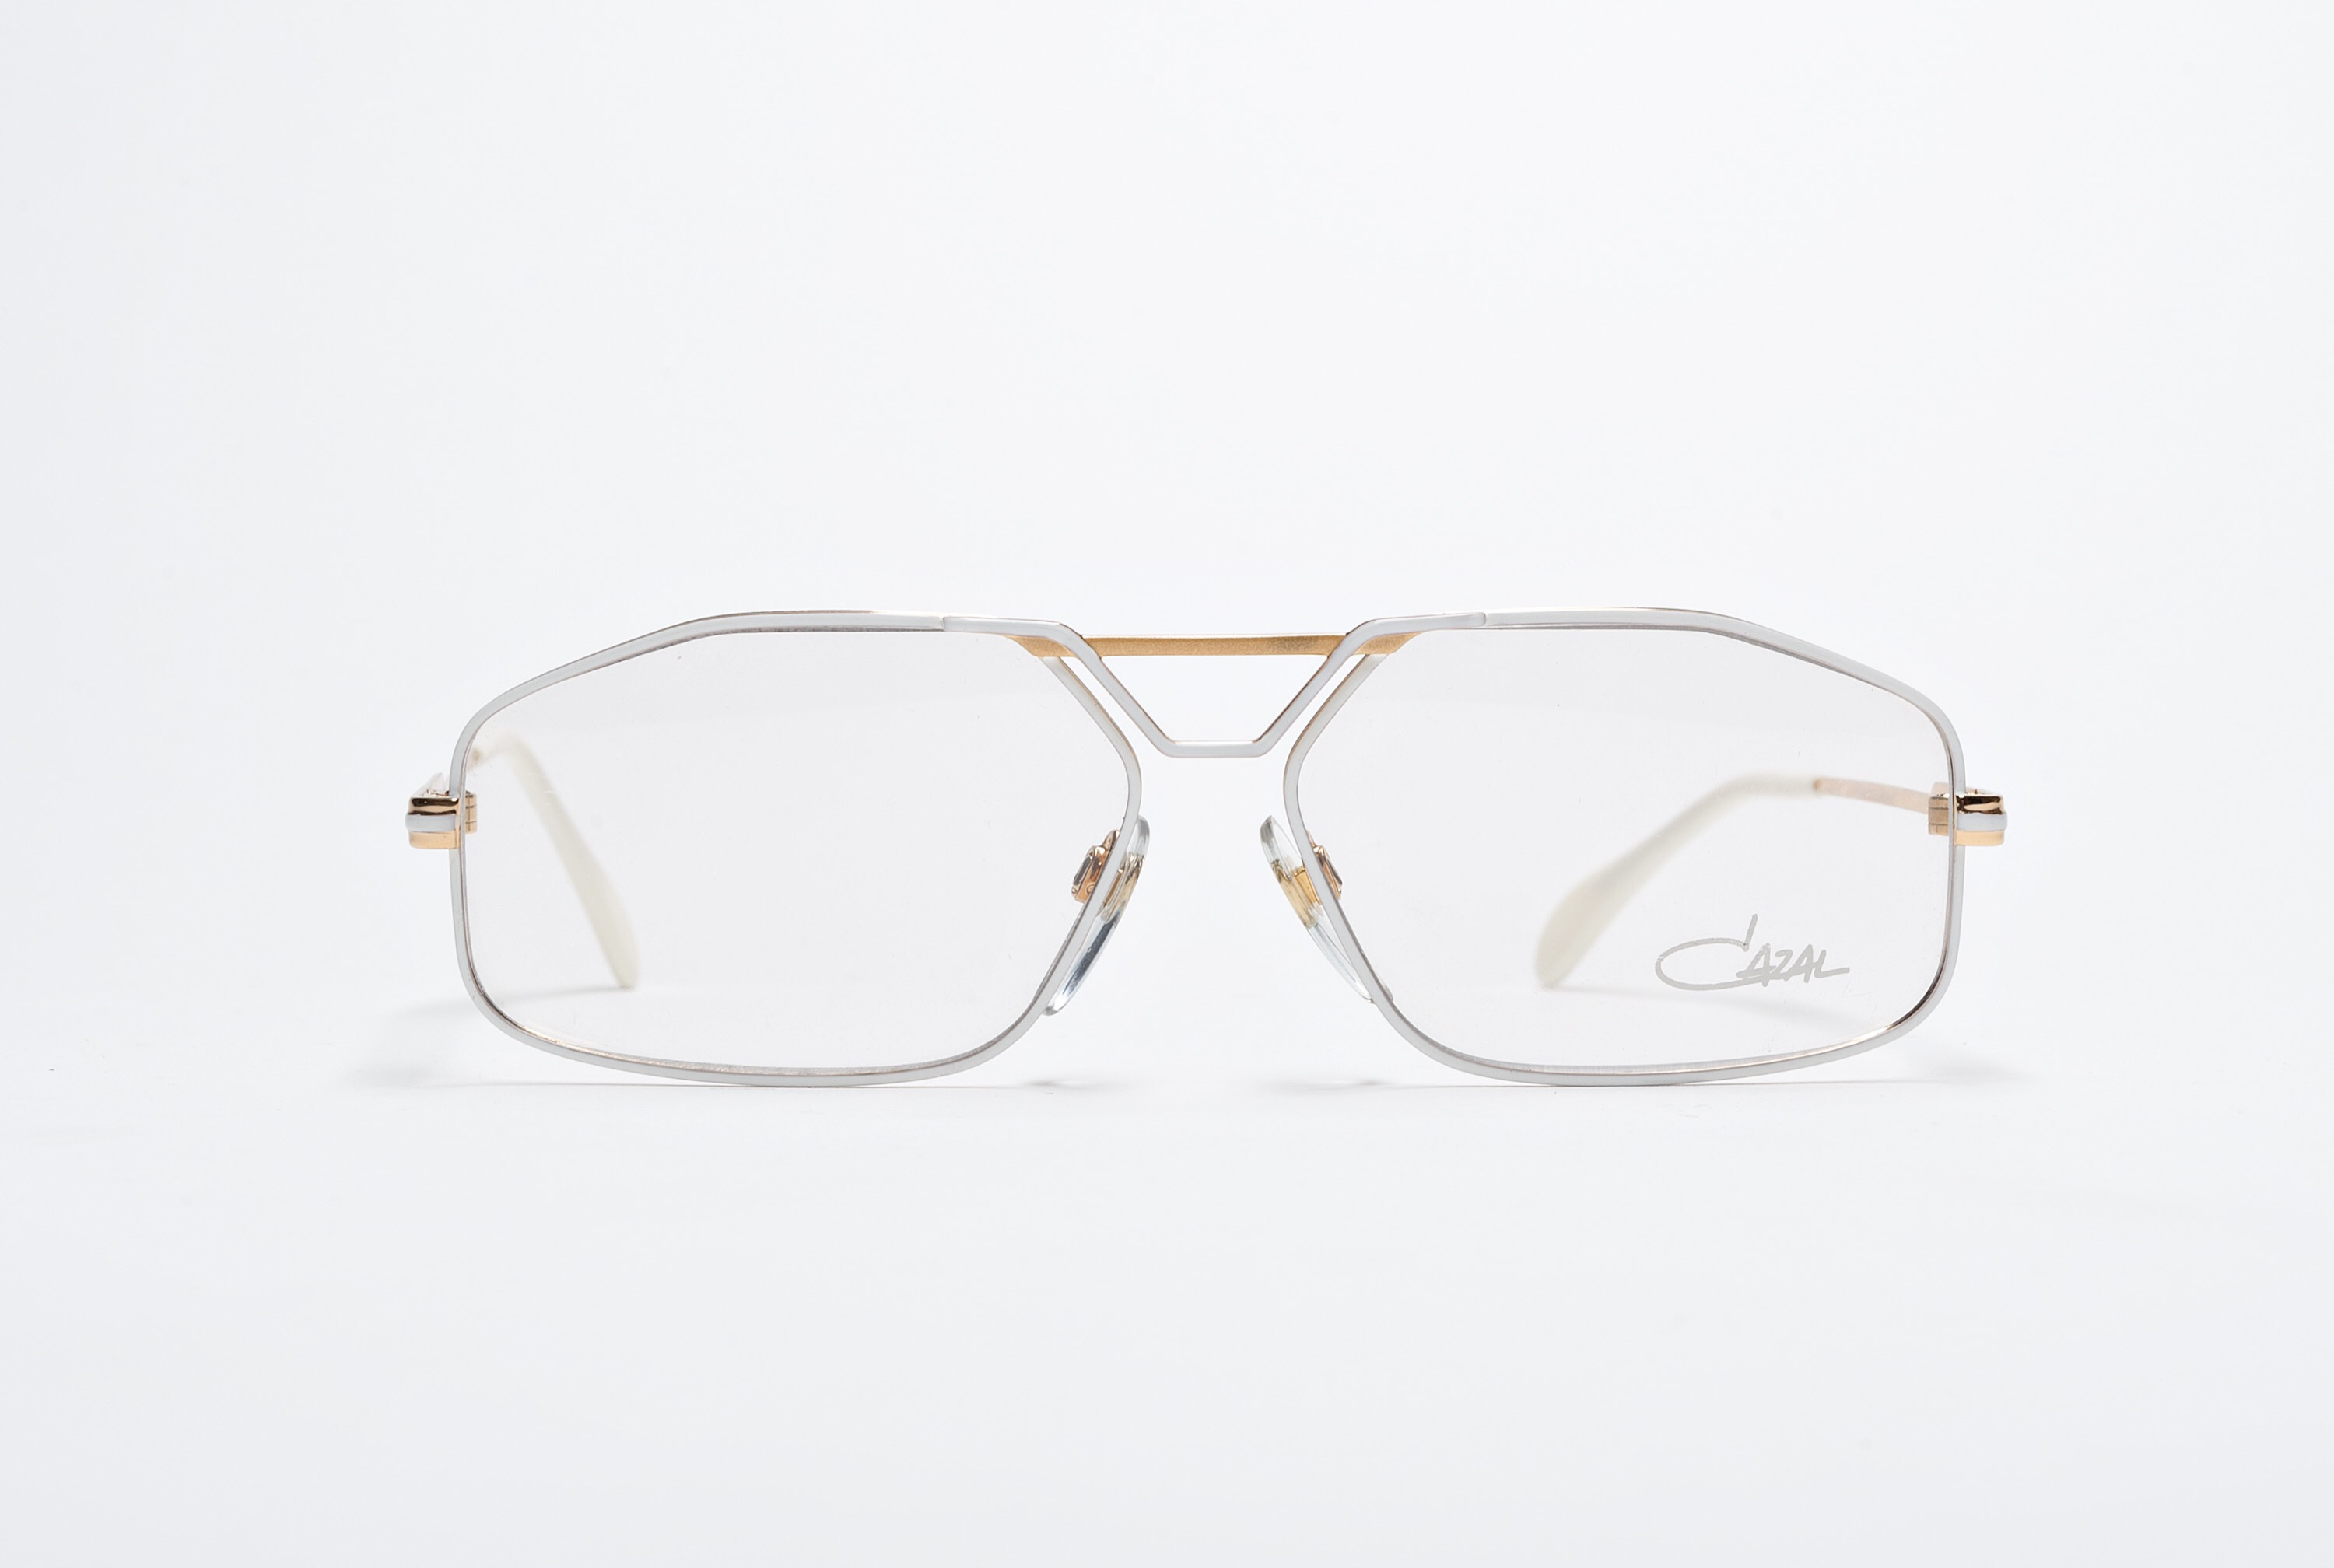 d86a51c87d Women s Authentic Vintage Cazal Glasses